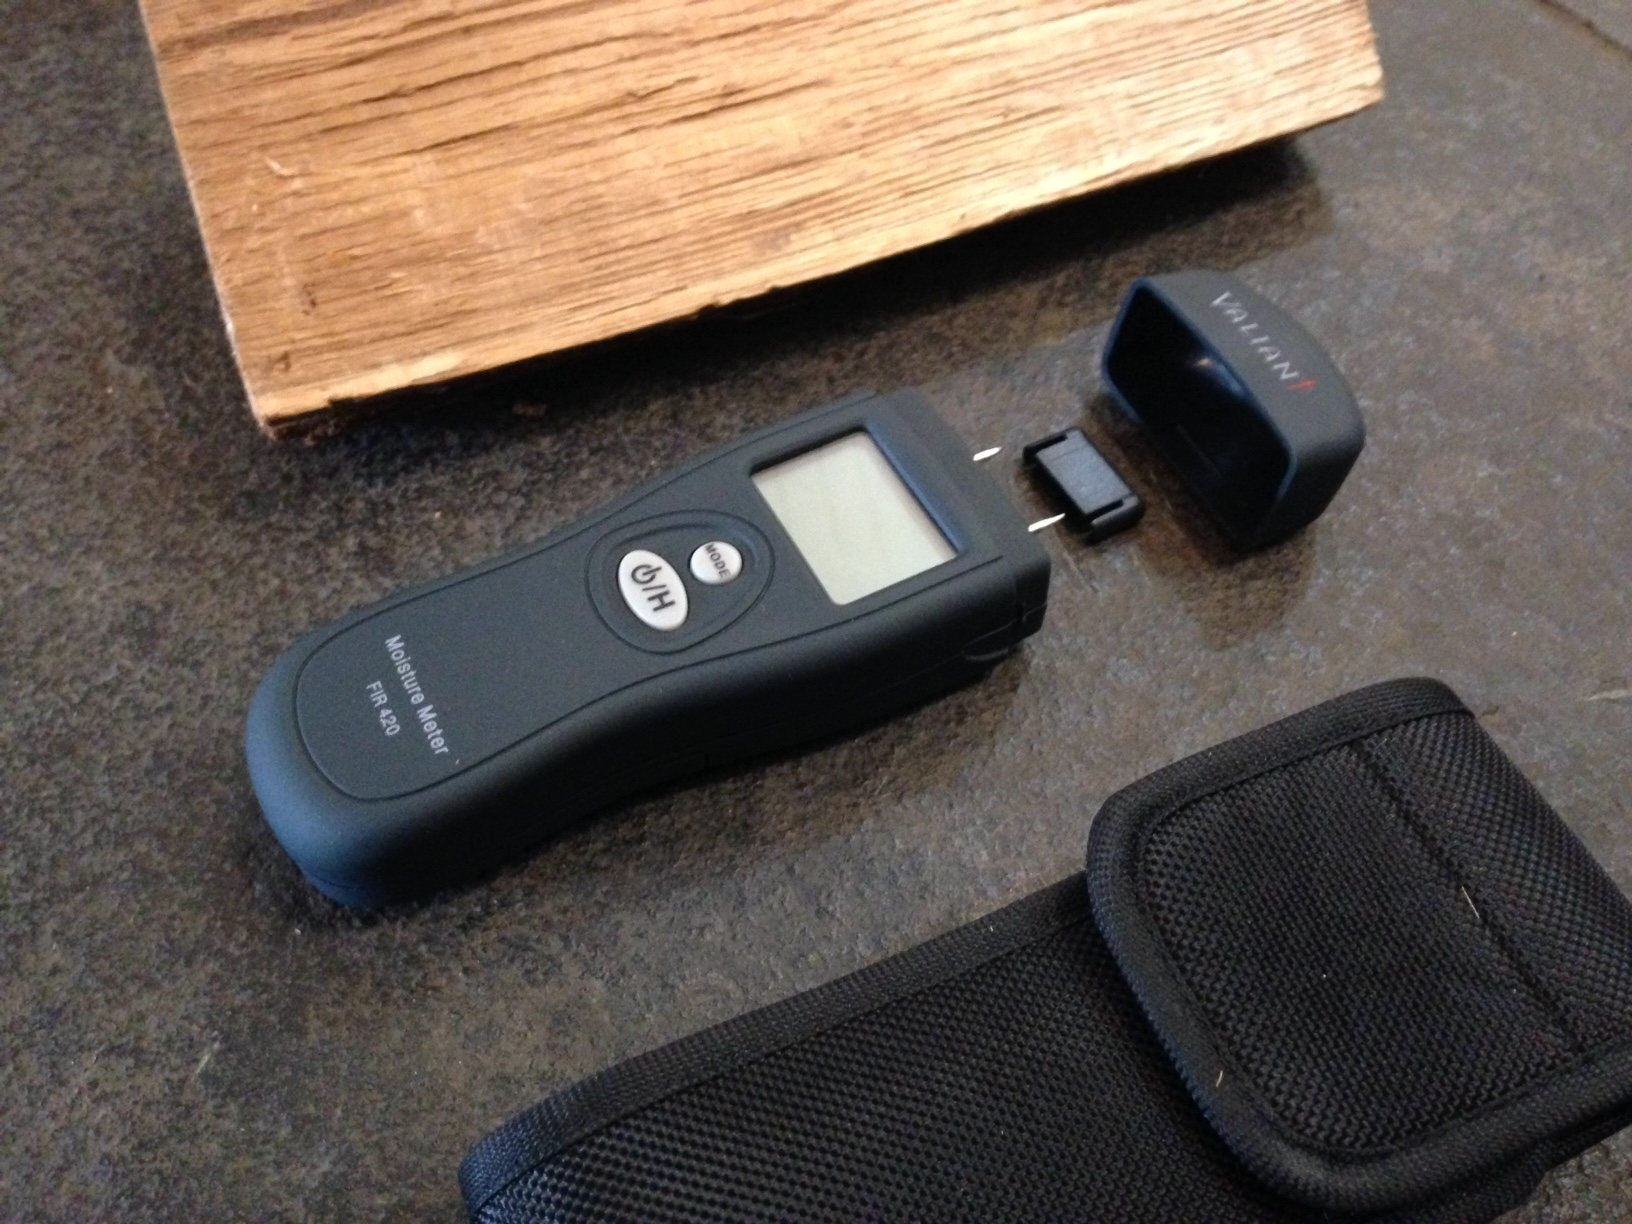 Embers Bristol mositure meters are a must for wood burners 1